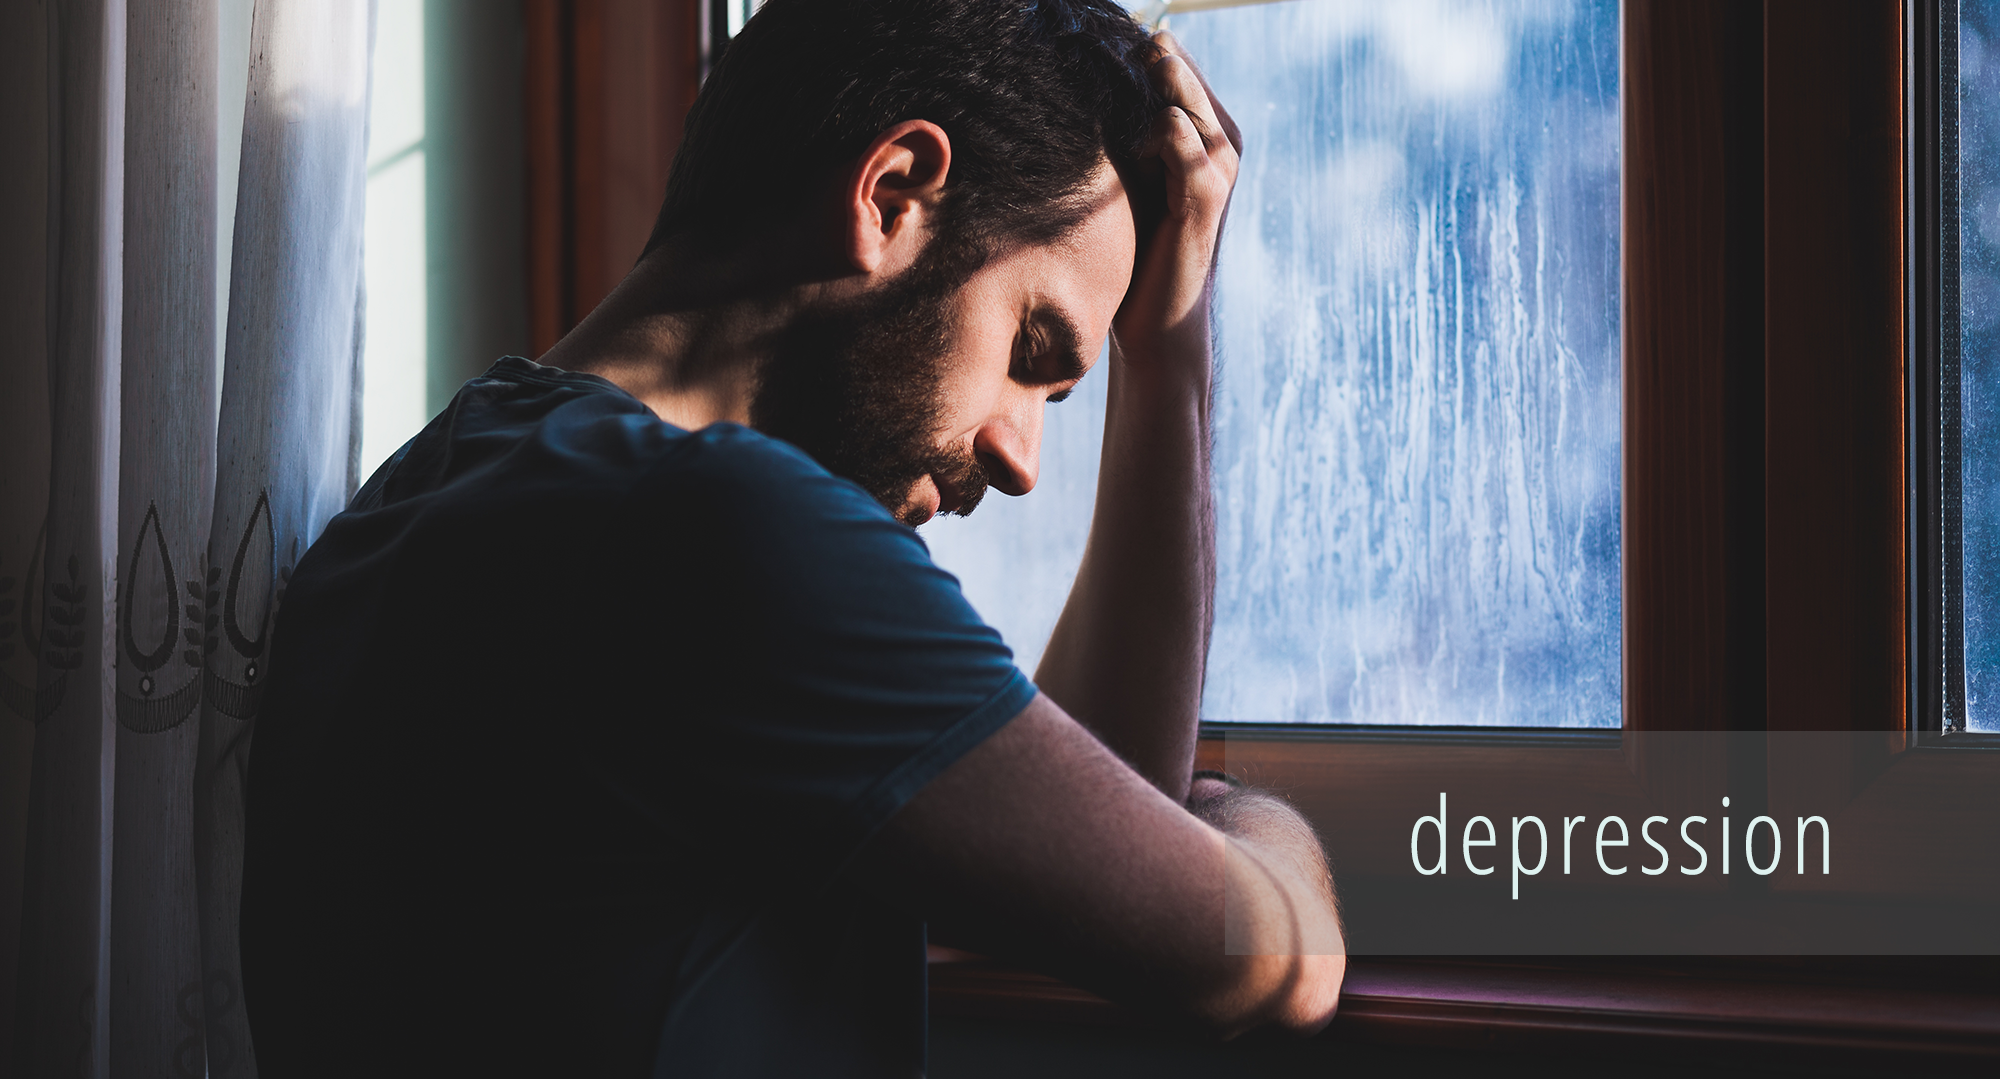 man suffering from anxiety and depression